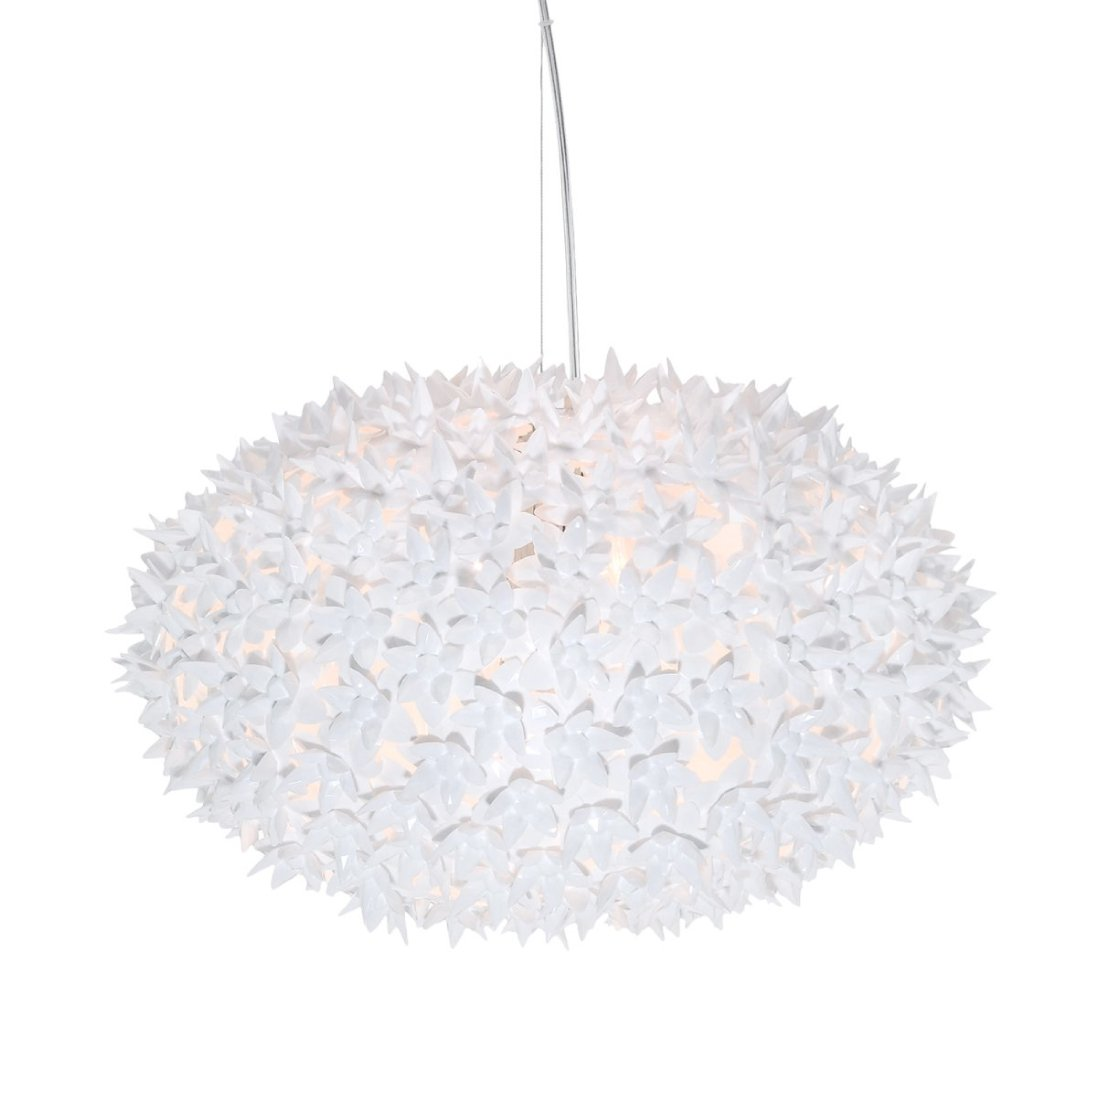 Bloom New S1 Hanglamp - Kartell